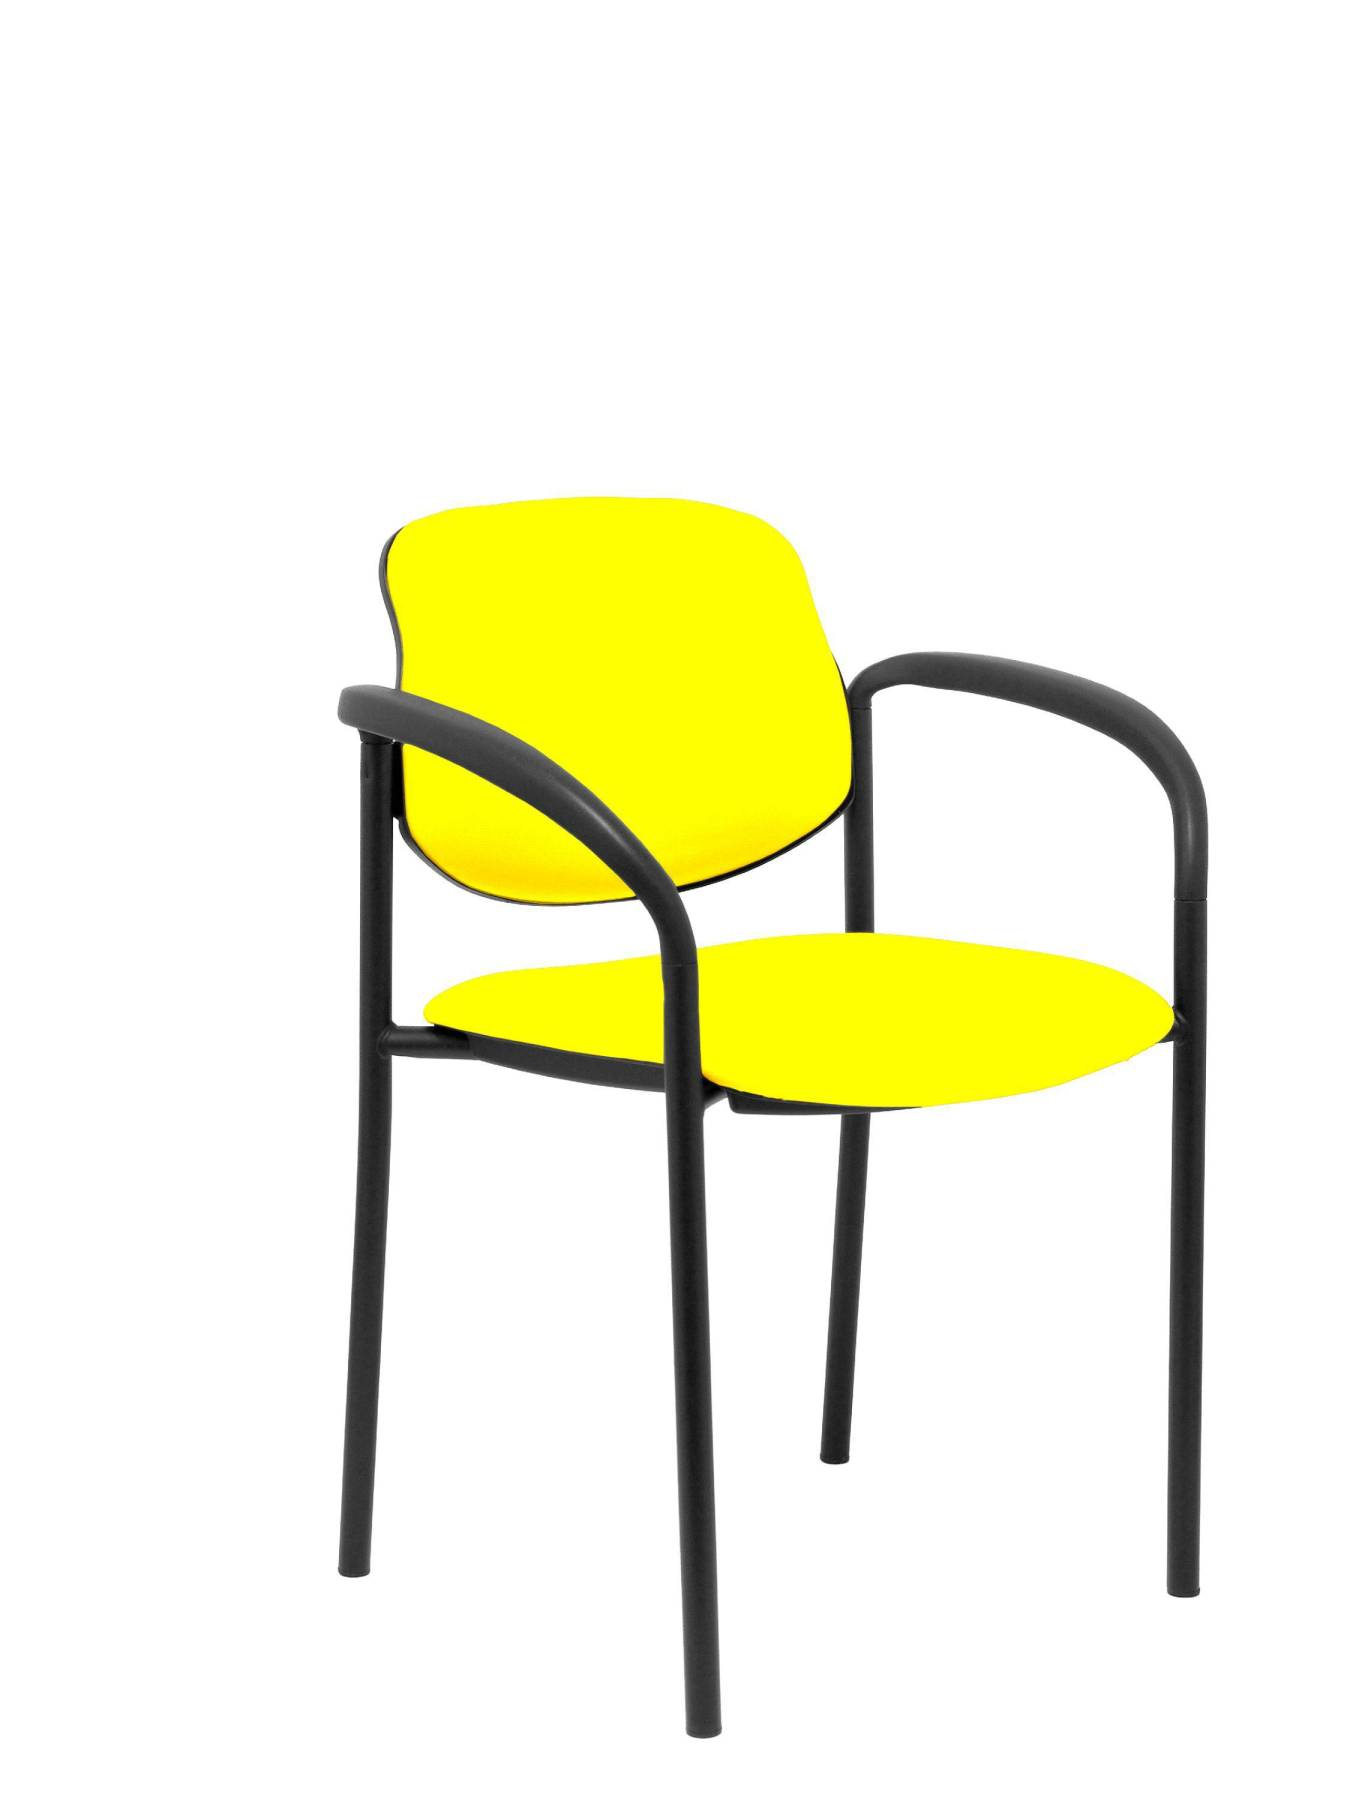 Visitor Chair 4's Topsy, With Arms And Estructrua Negro-up Seat And Backstop Upholstered In Tissue Similpiel Yellow P